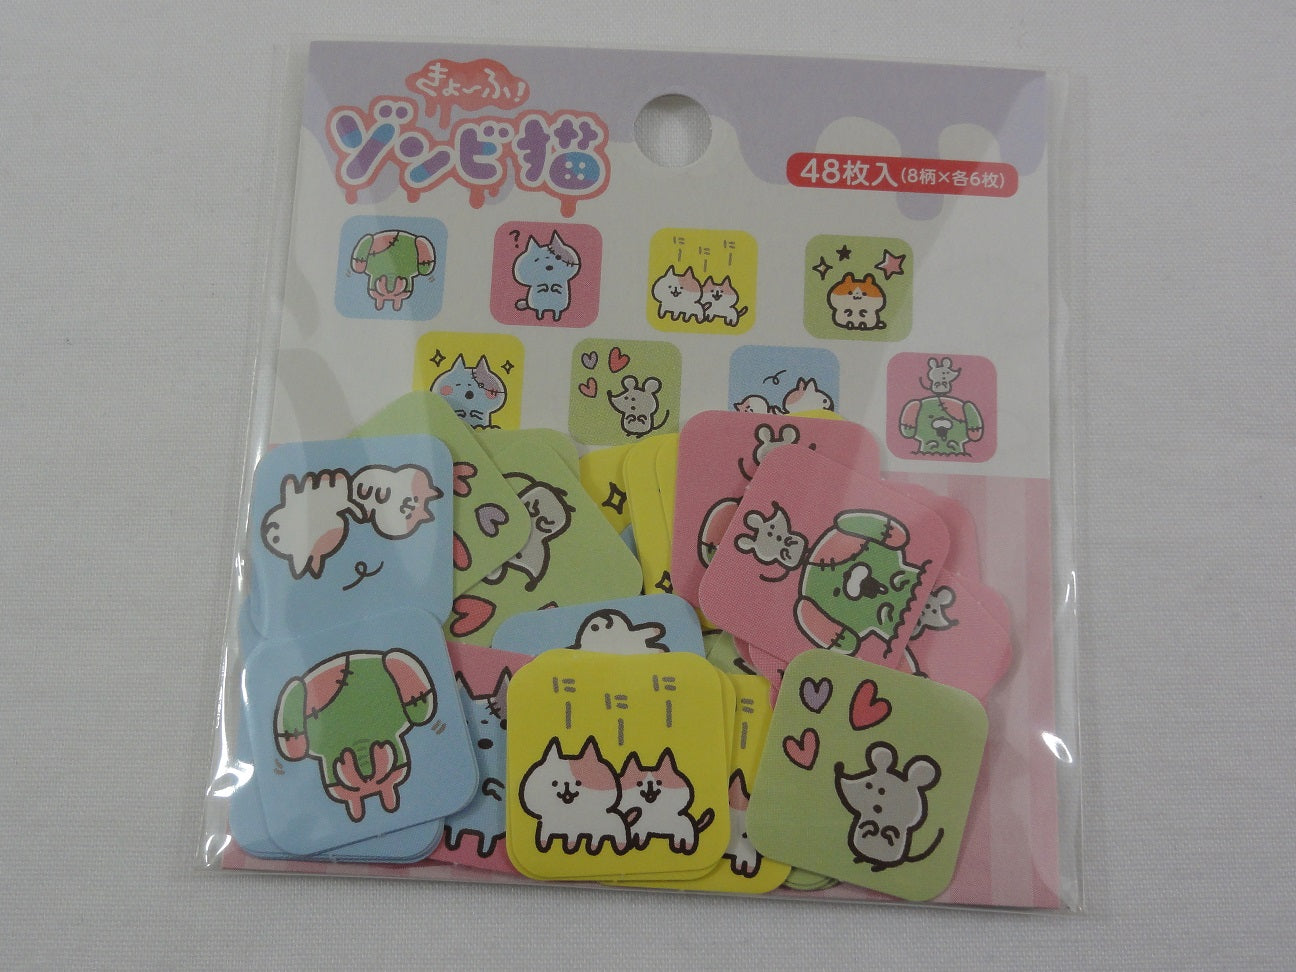 Cute Kawaii Zombie Cat Whimsical Flake Stickers Sack B For Journal Agenda Planner Scrapbooking Craft